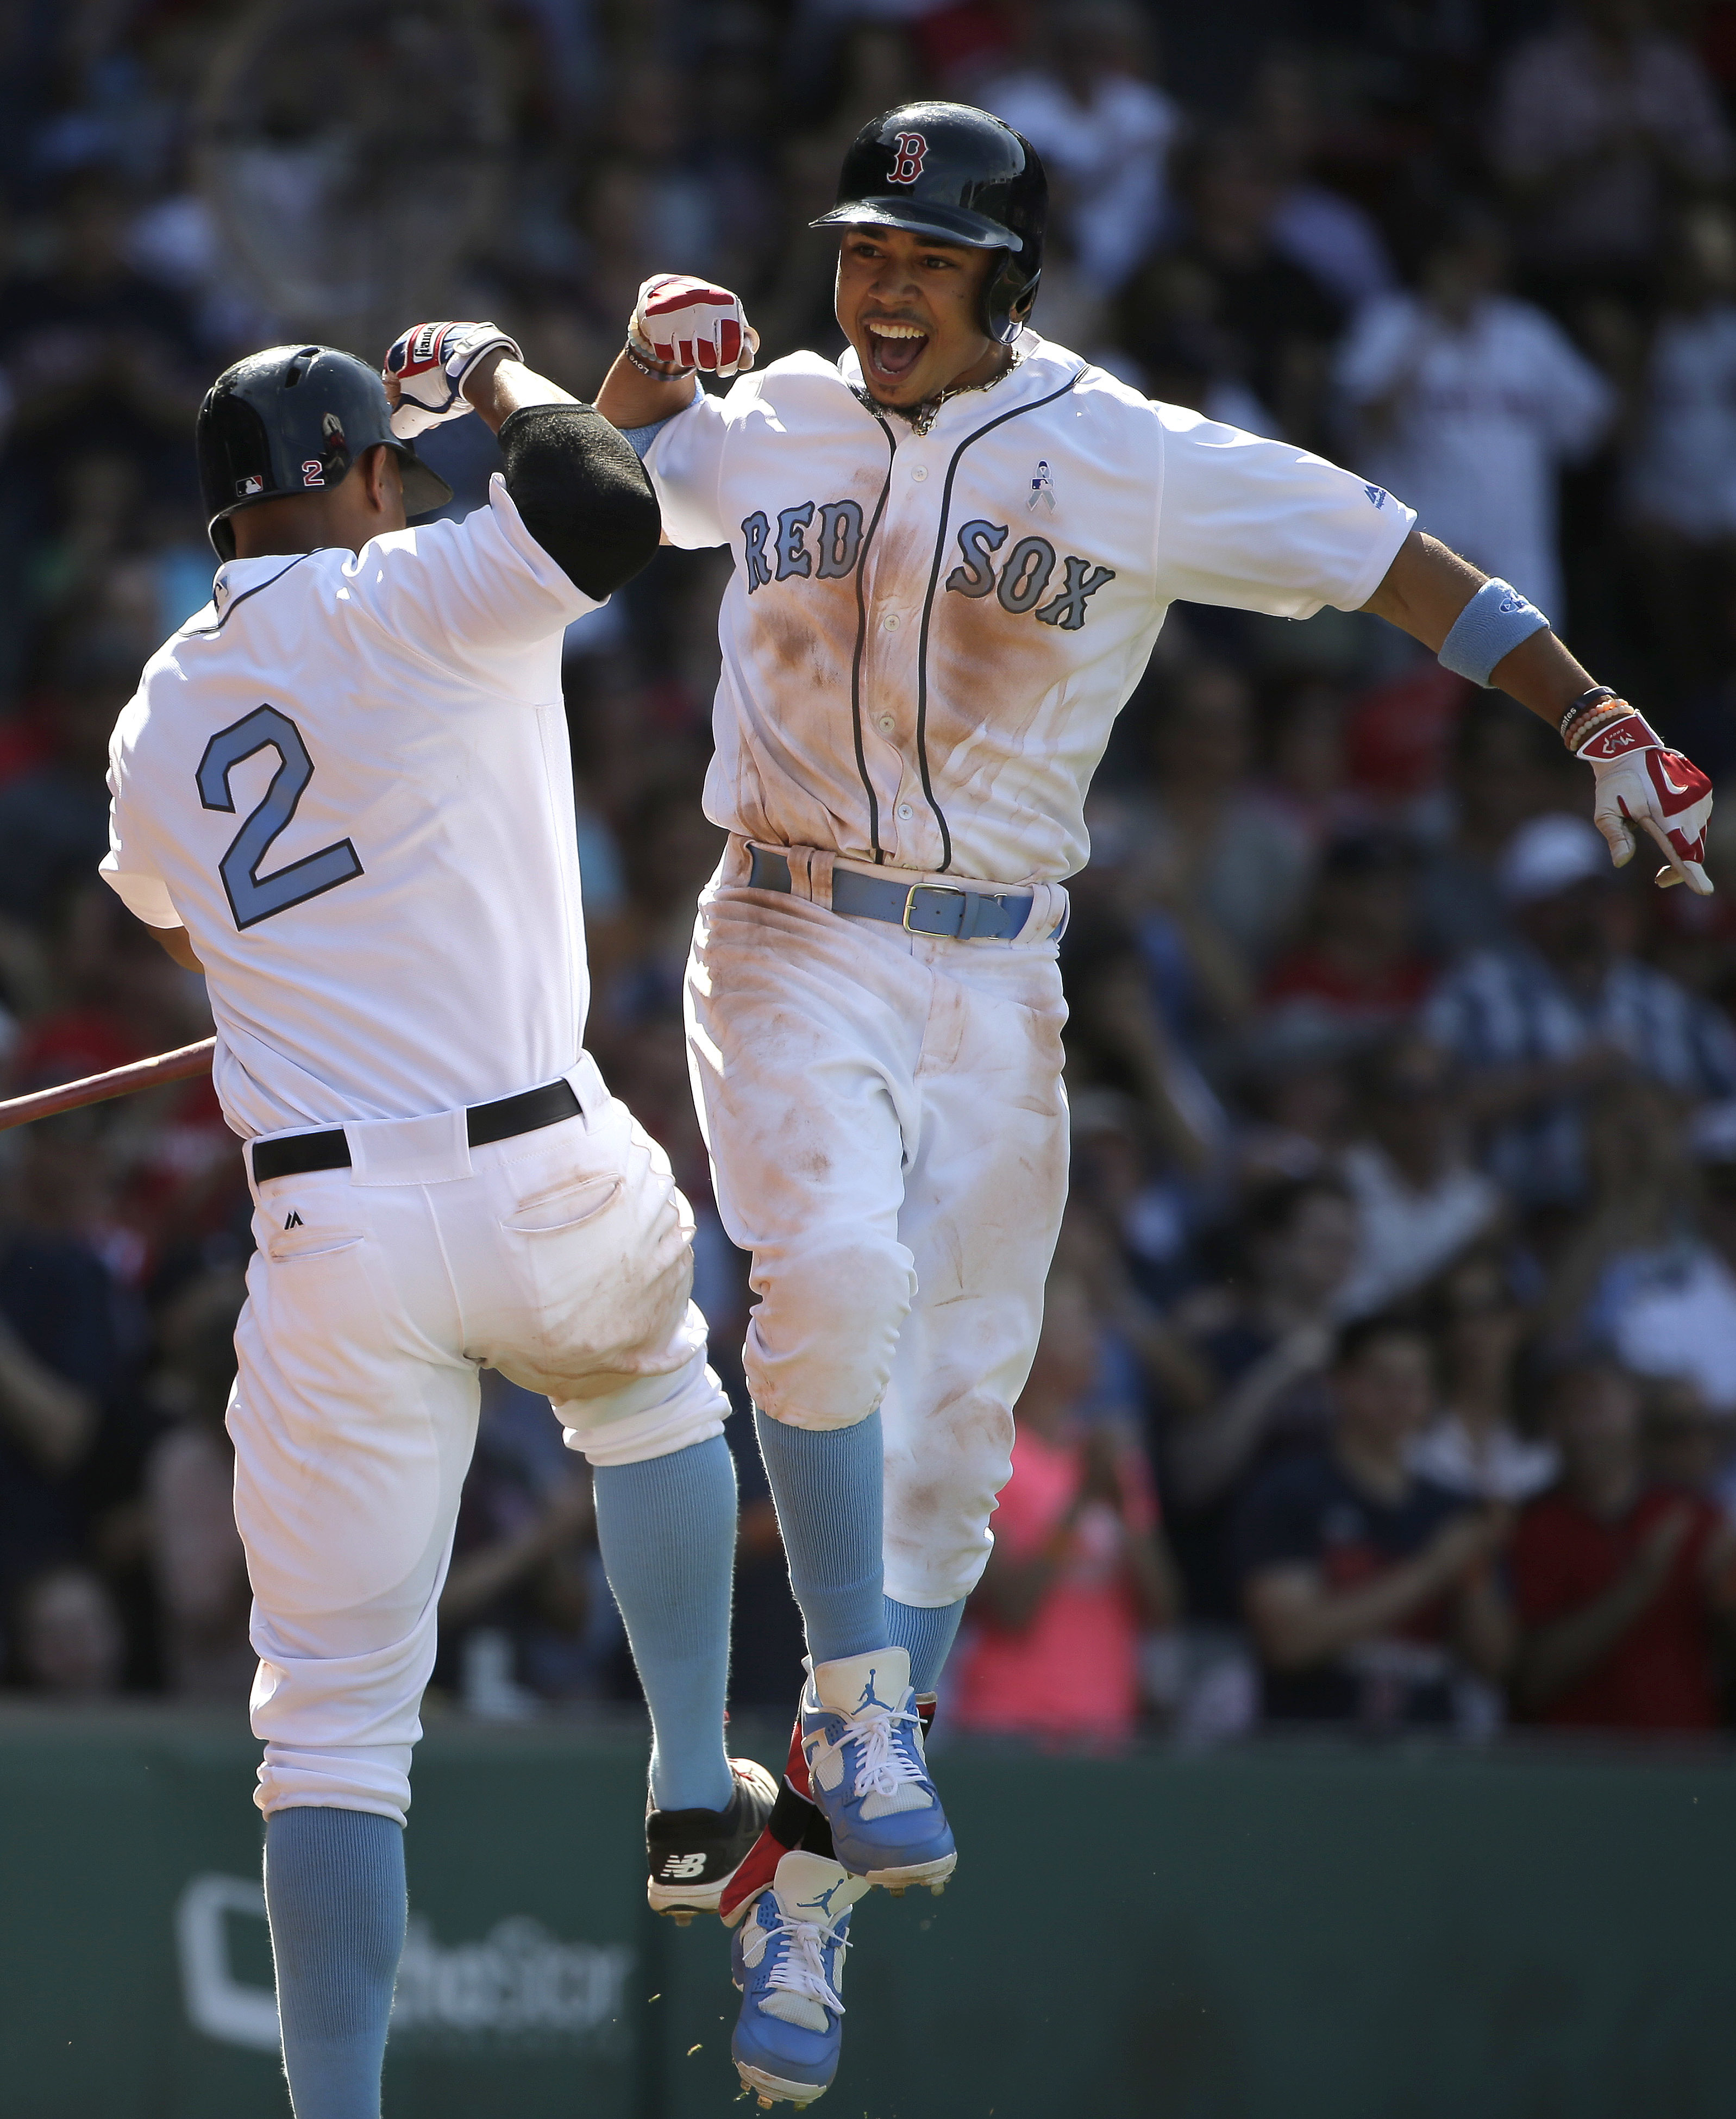 Boston Red Sox's Mookie Betts, right, celebrates with Xander Bogaerts as he arrives home after hitting a home run off a pitch by Seattle Mariners' Edwin Diaz in the seventh inning of a baseball game, Sunday, June 19, 2016, in Boston. (AP Photo/Steven Senn